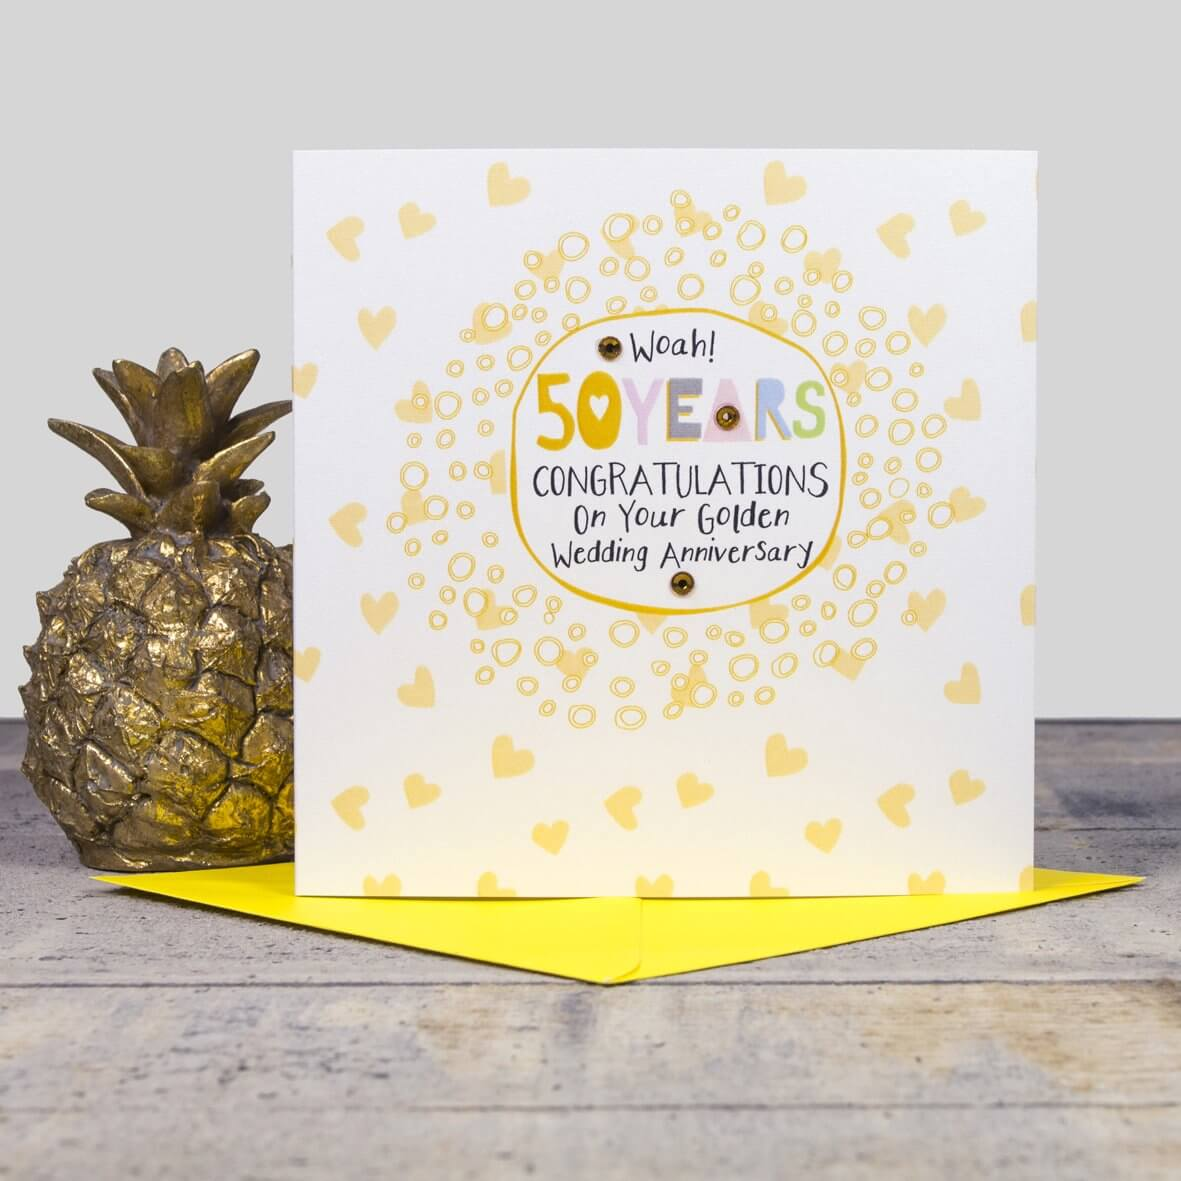 On Your 50th Wedding Anniversary Card - Golden